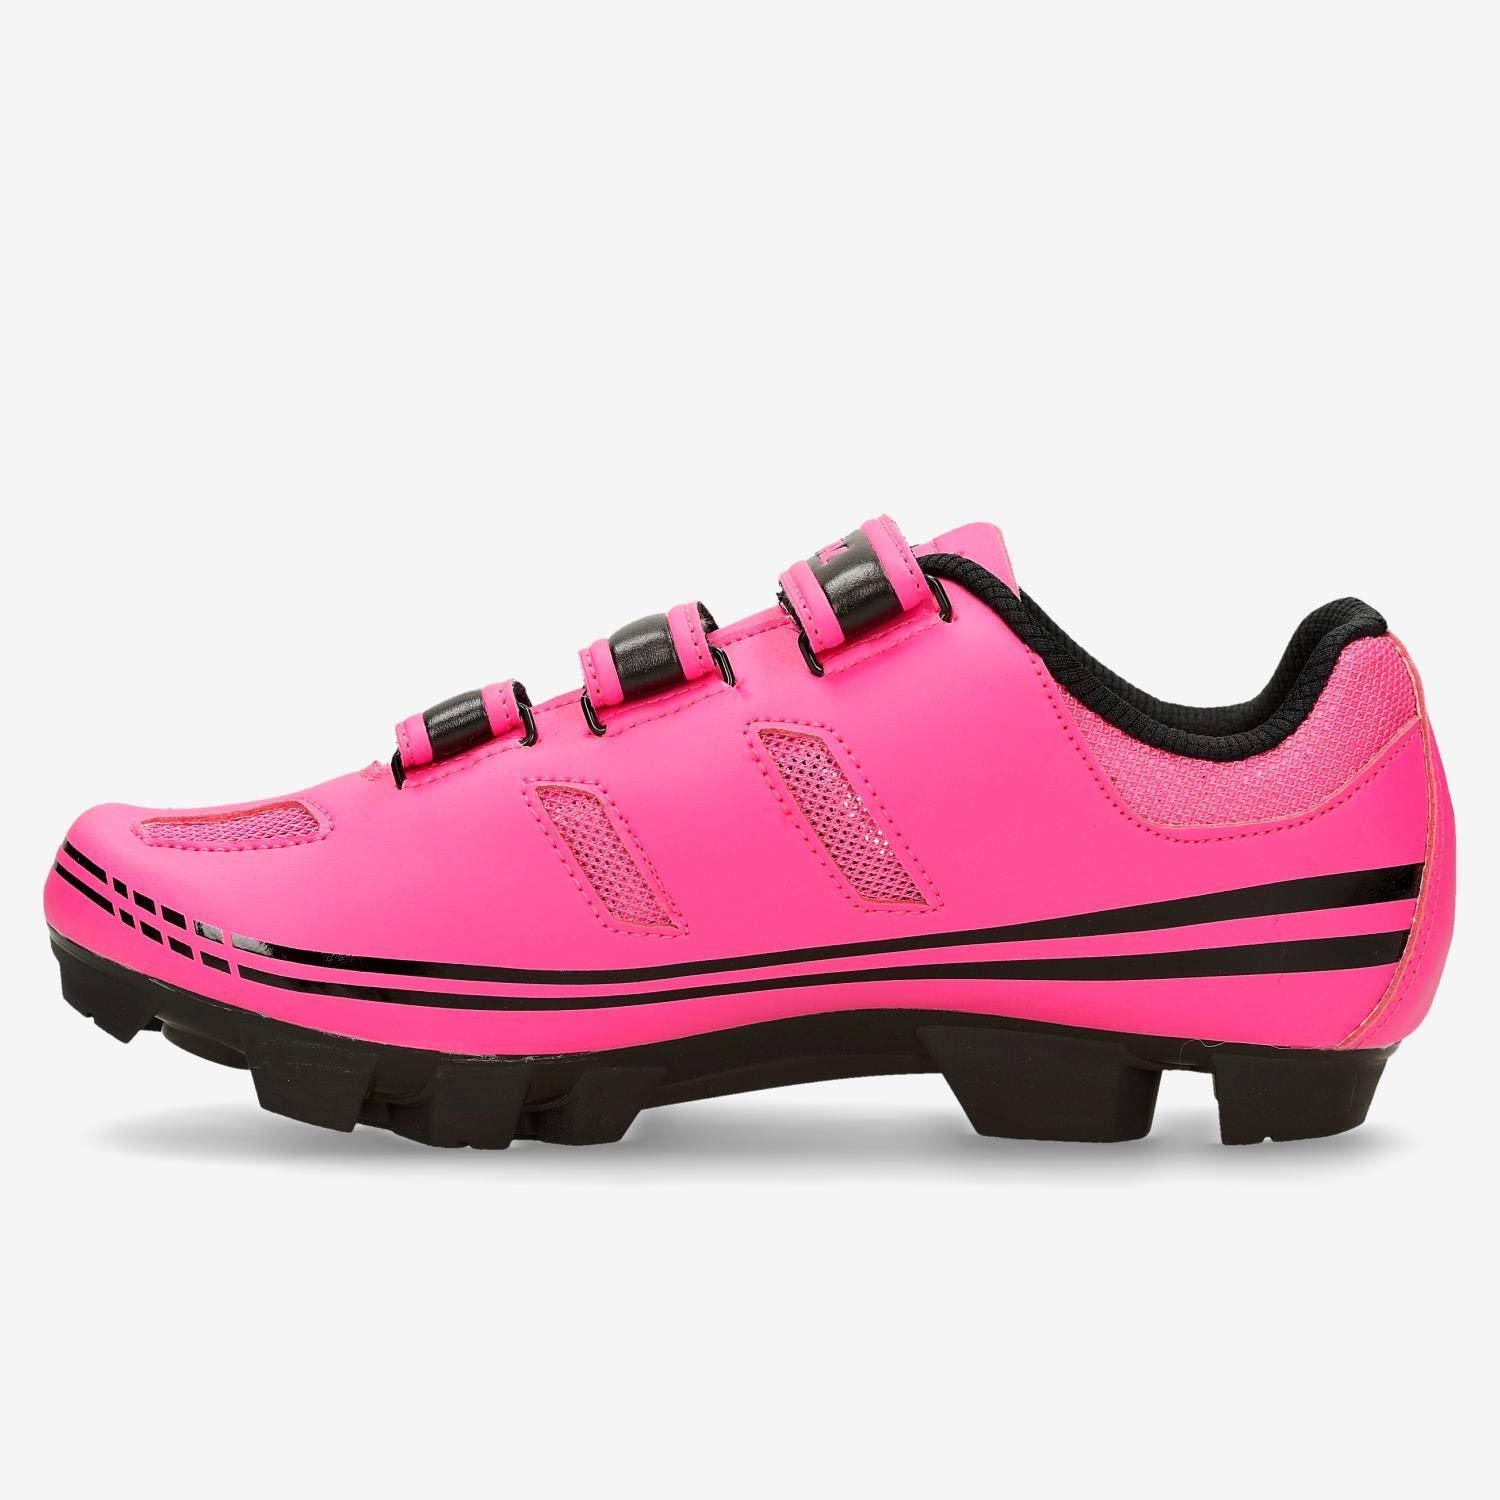 MITICAL Zapatillas Ciclismo Sagan (Talla: 38): Amazon.es: Deportes ...